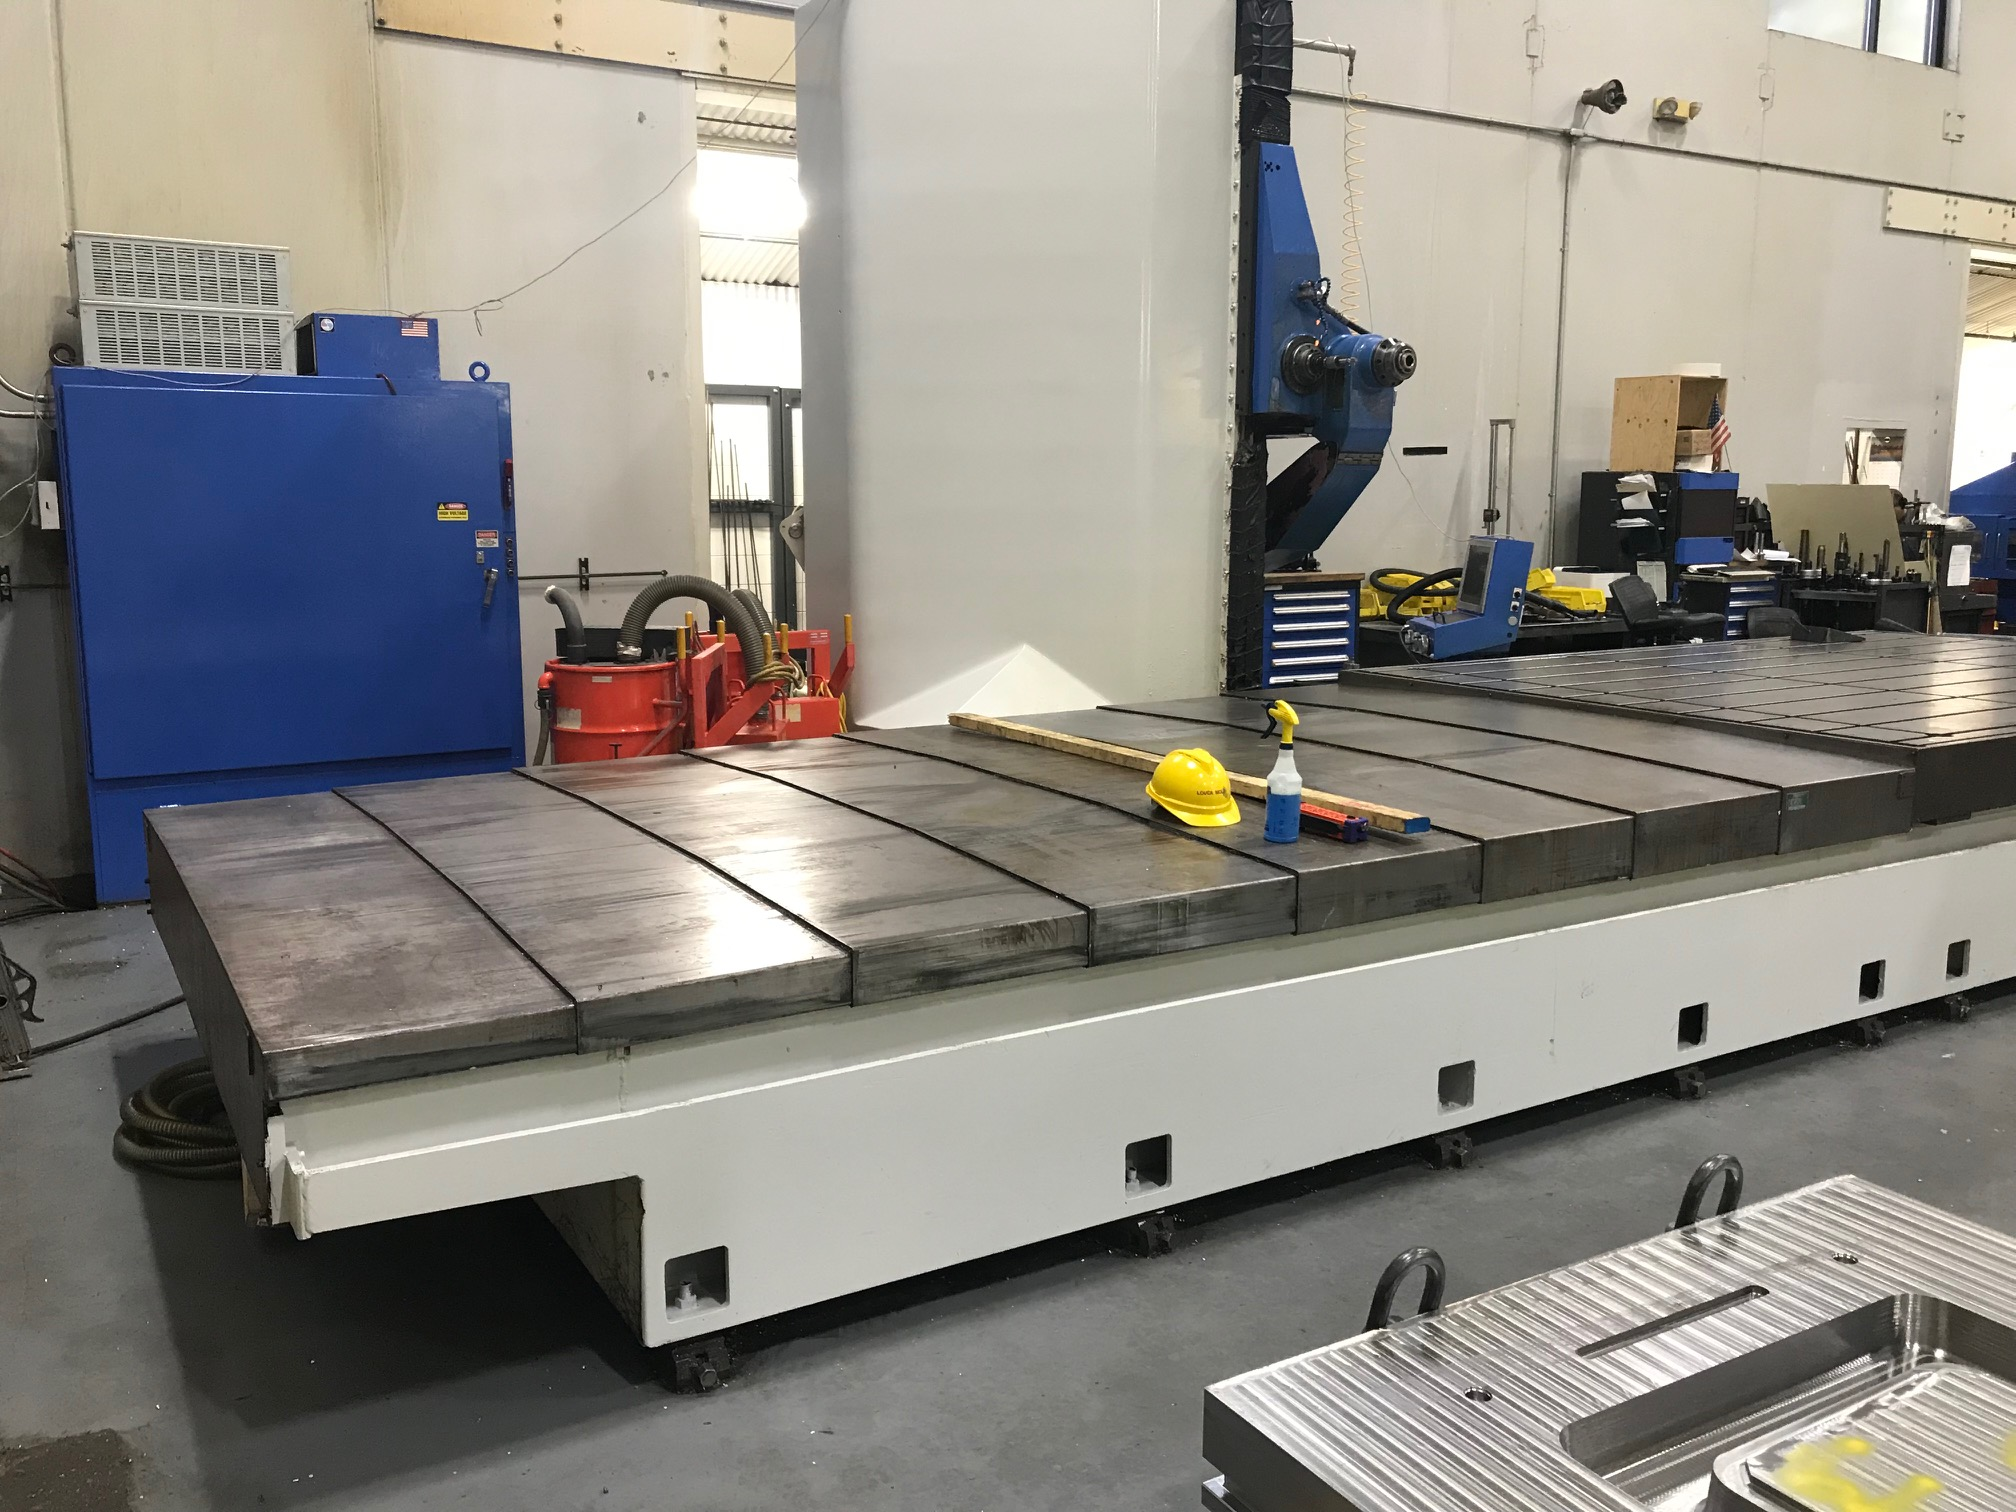 TARUS MODEL TPTCGD512S, 4-AXIS Dual CNC Gun Drilling System (sharing a Centralized Coolant System) - Image 4 of 15